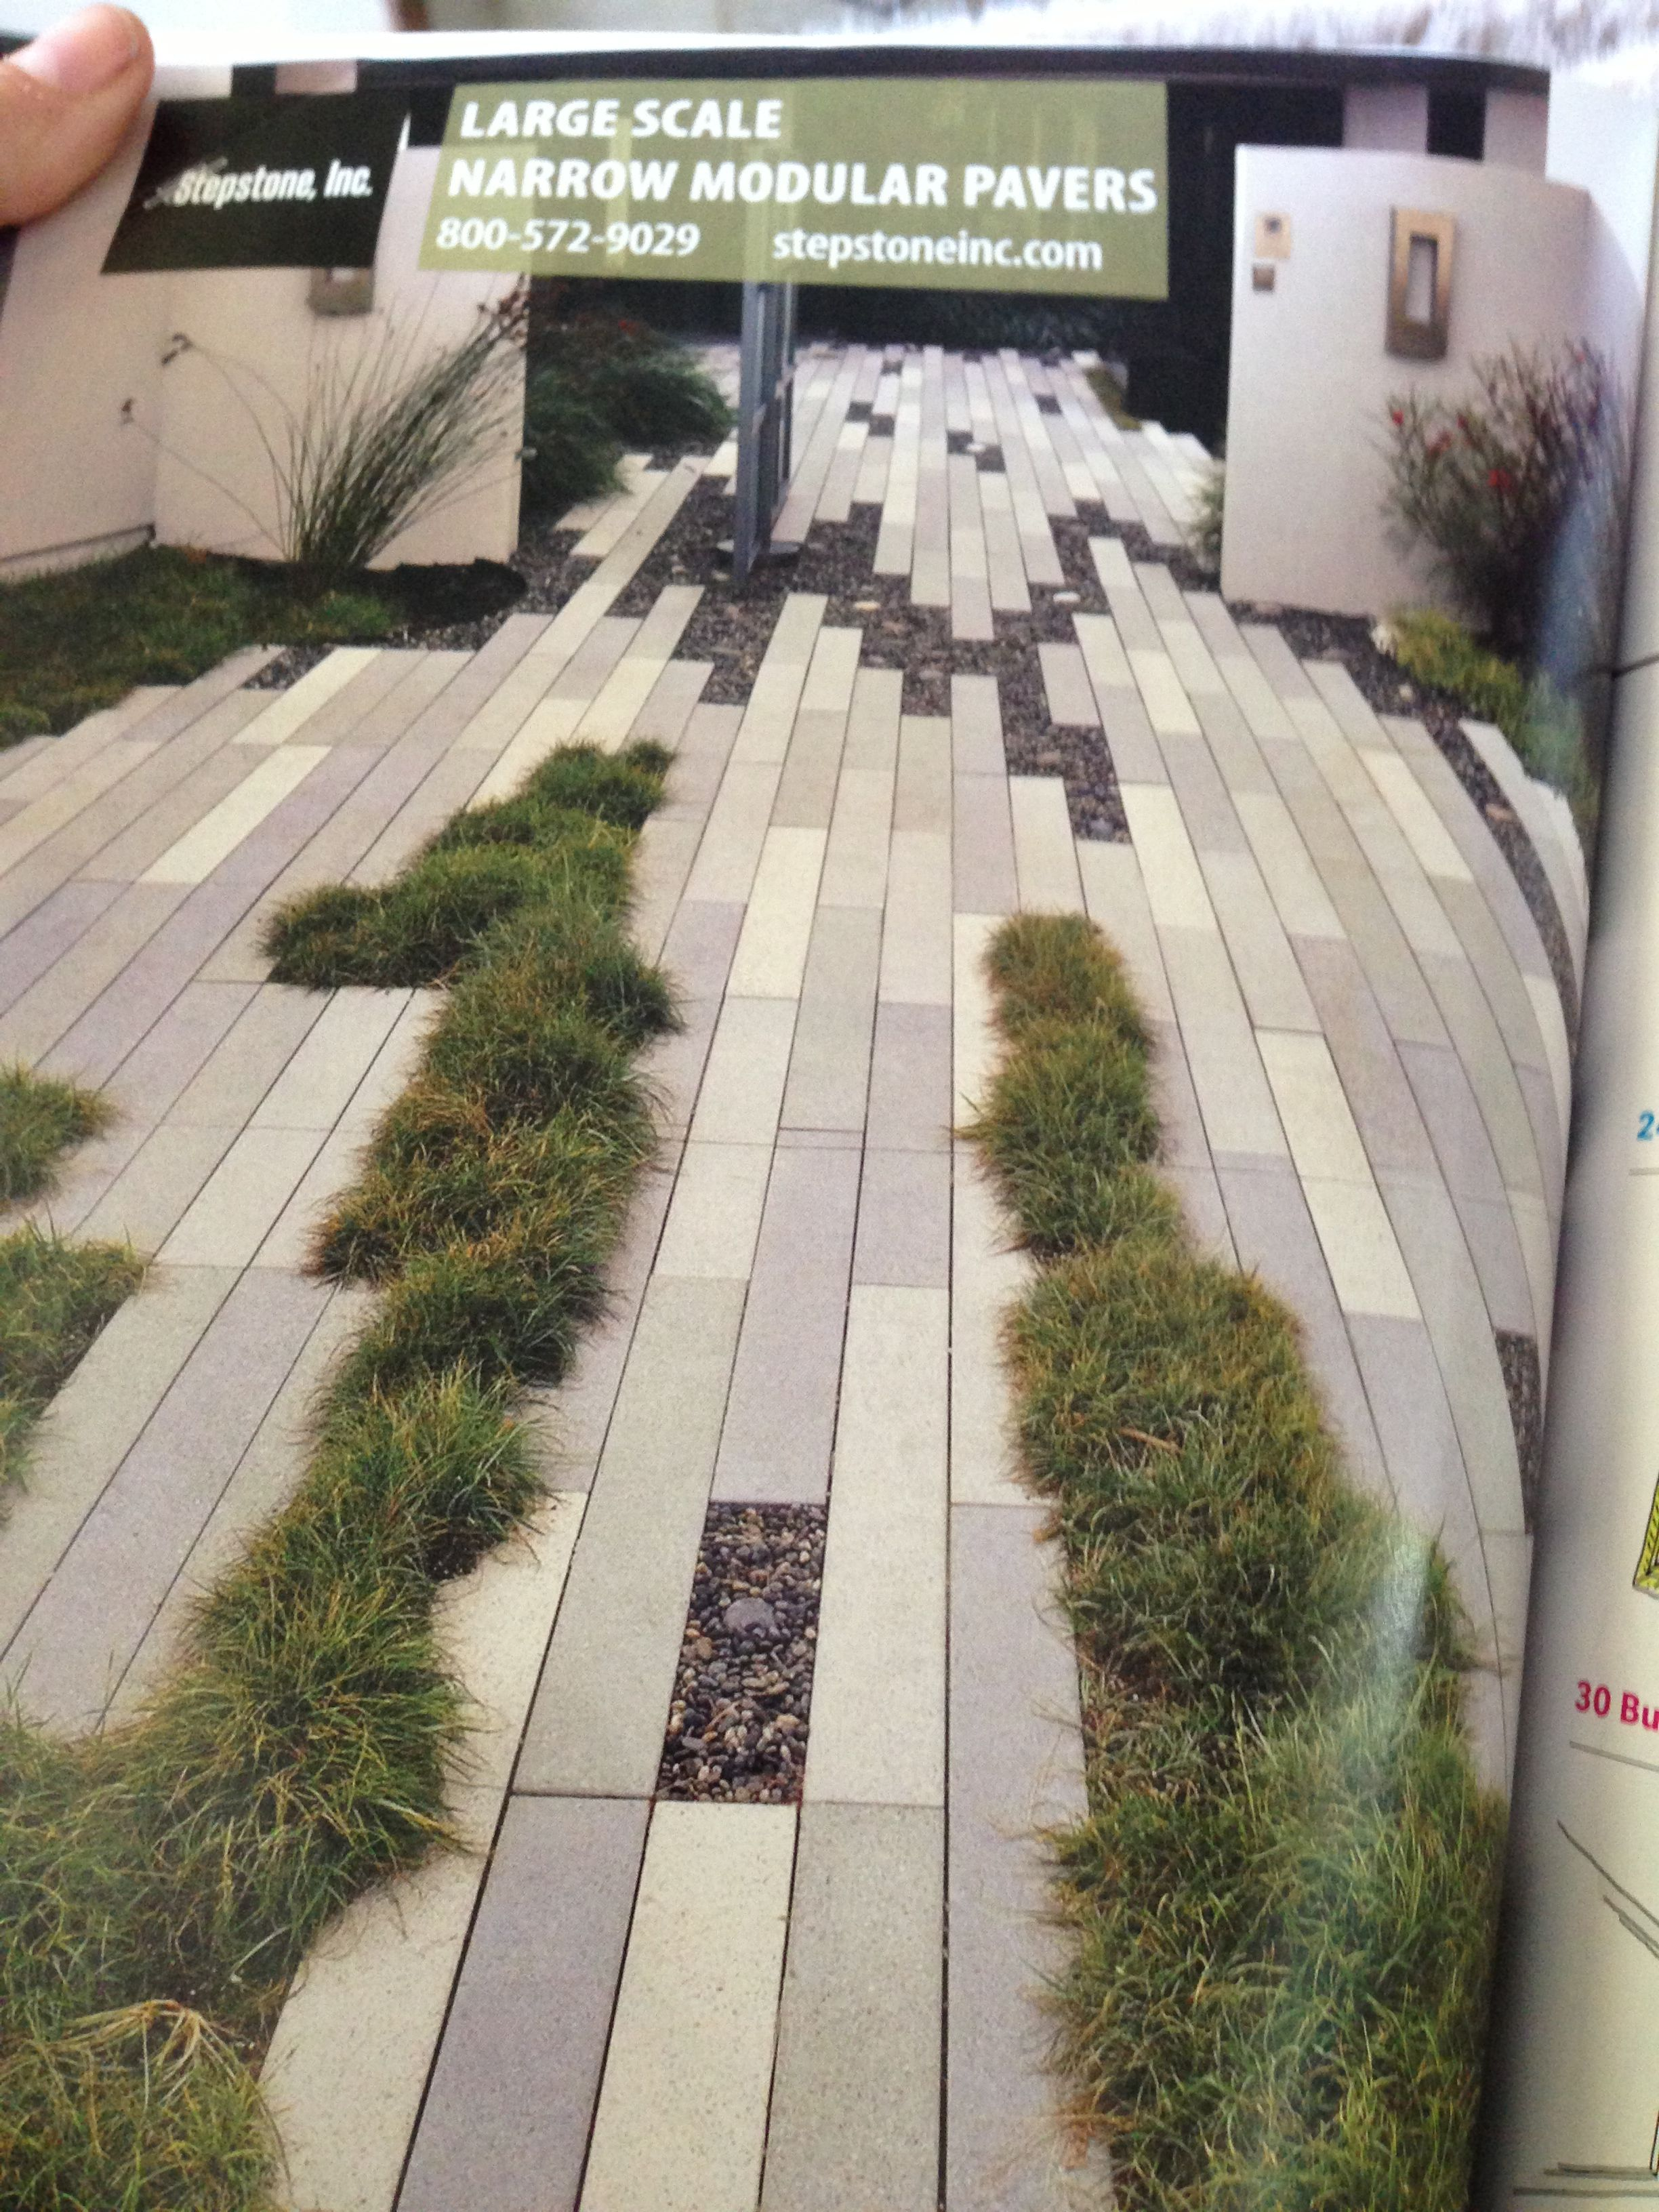 """Stepstone"" pavers for lower patio area in San. Large ... Stepstone"